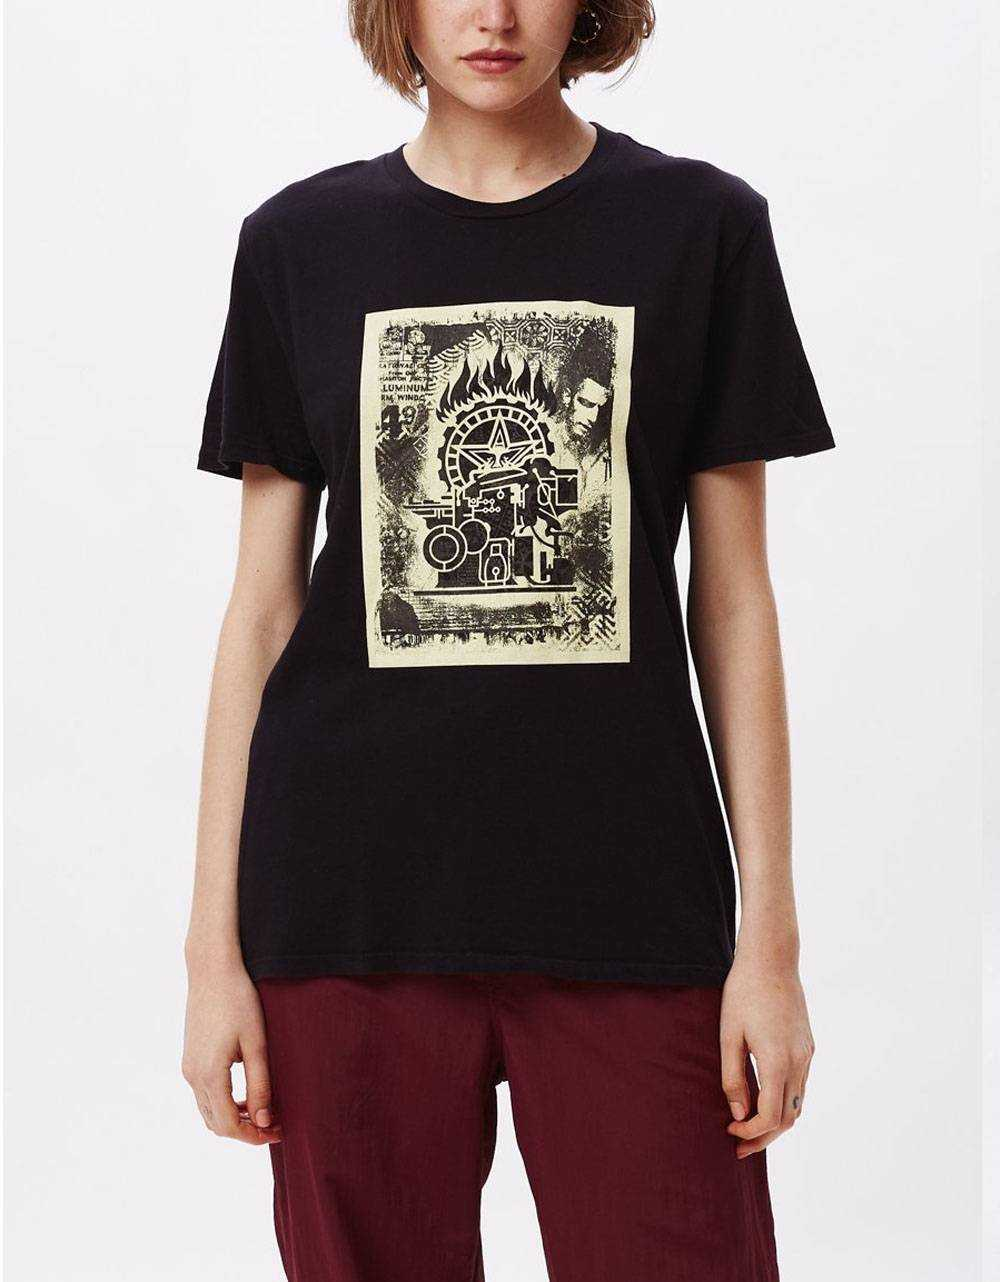 Obey Woman press etching classic tee - black obey T-shirt 45,00€